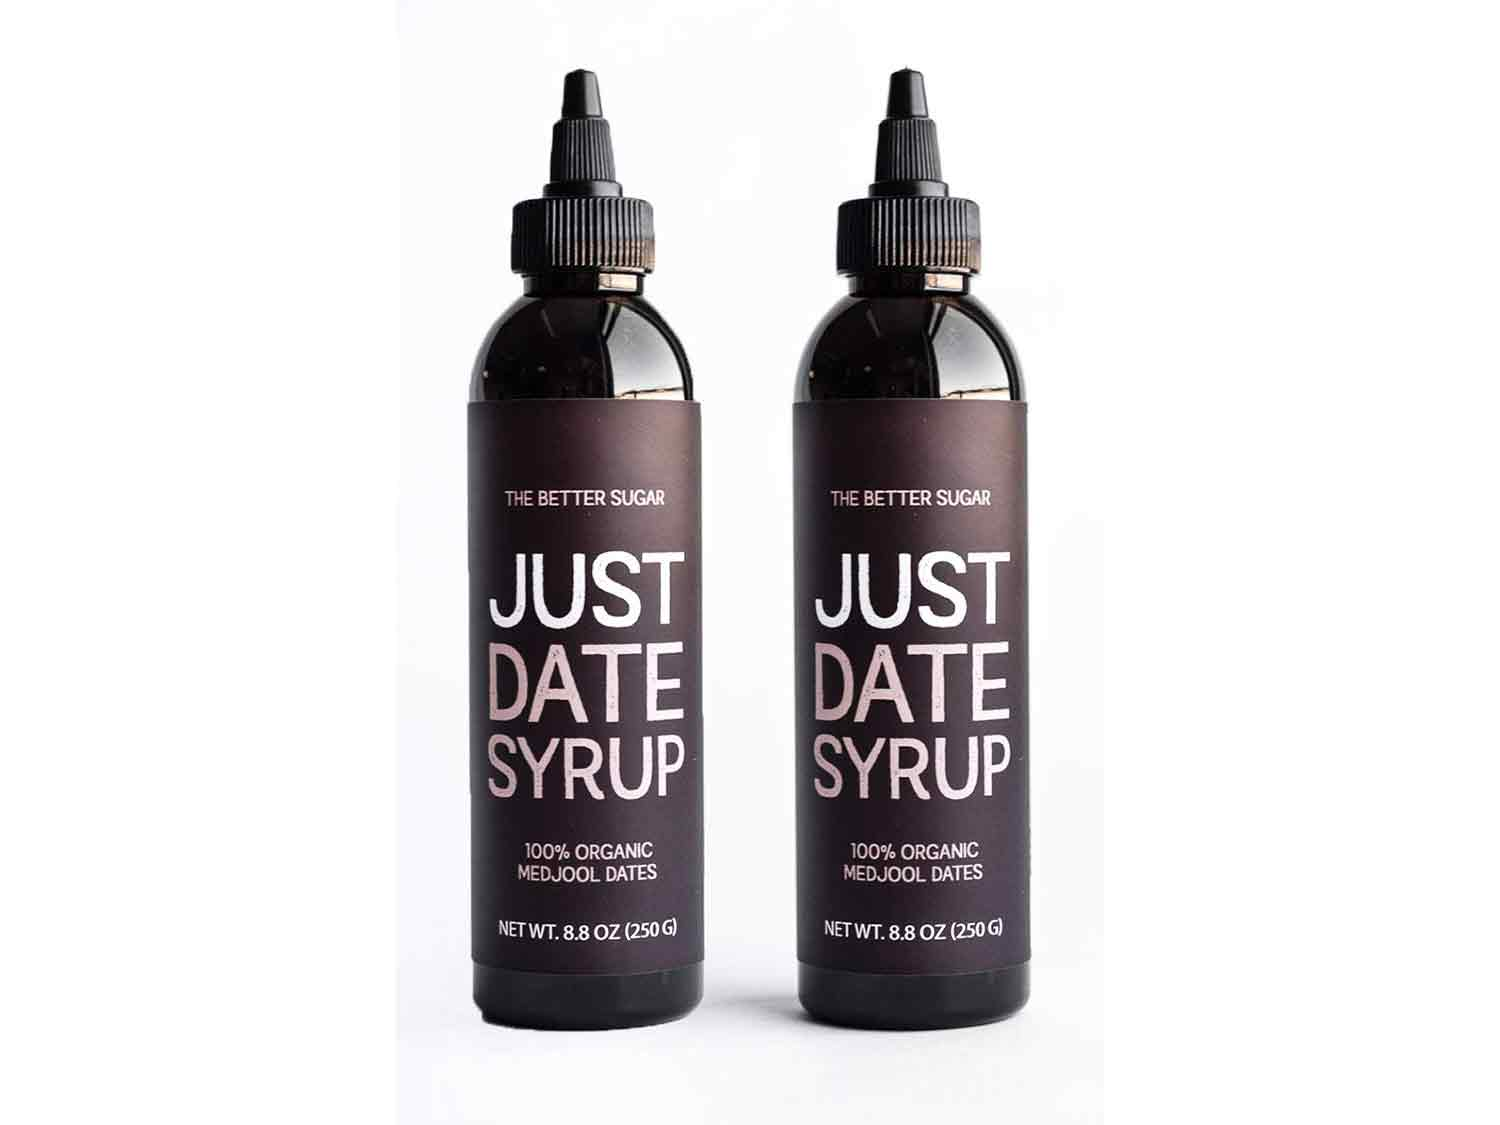 Just Date Syrup: Award-Winning Organic Date Syrup I Two 8.8 OZ Squeeze Bottles I Low-Glycemic, Vegan, Paleo   1 Ingredient : 100% California Medjool Dates